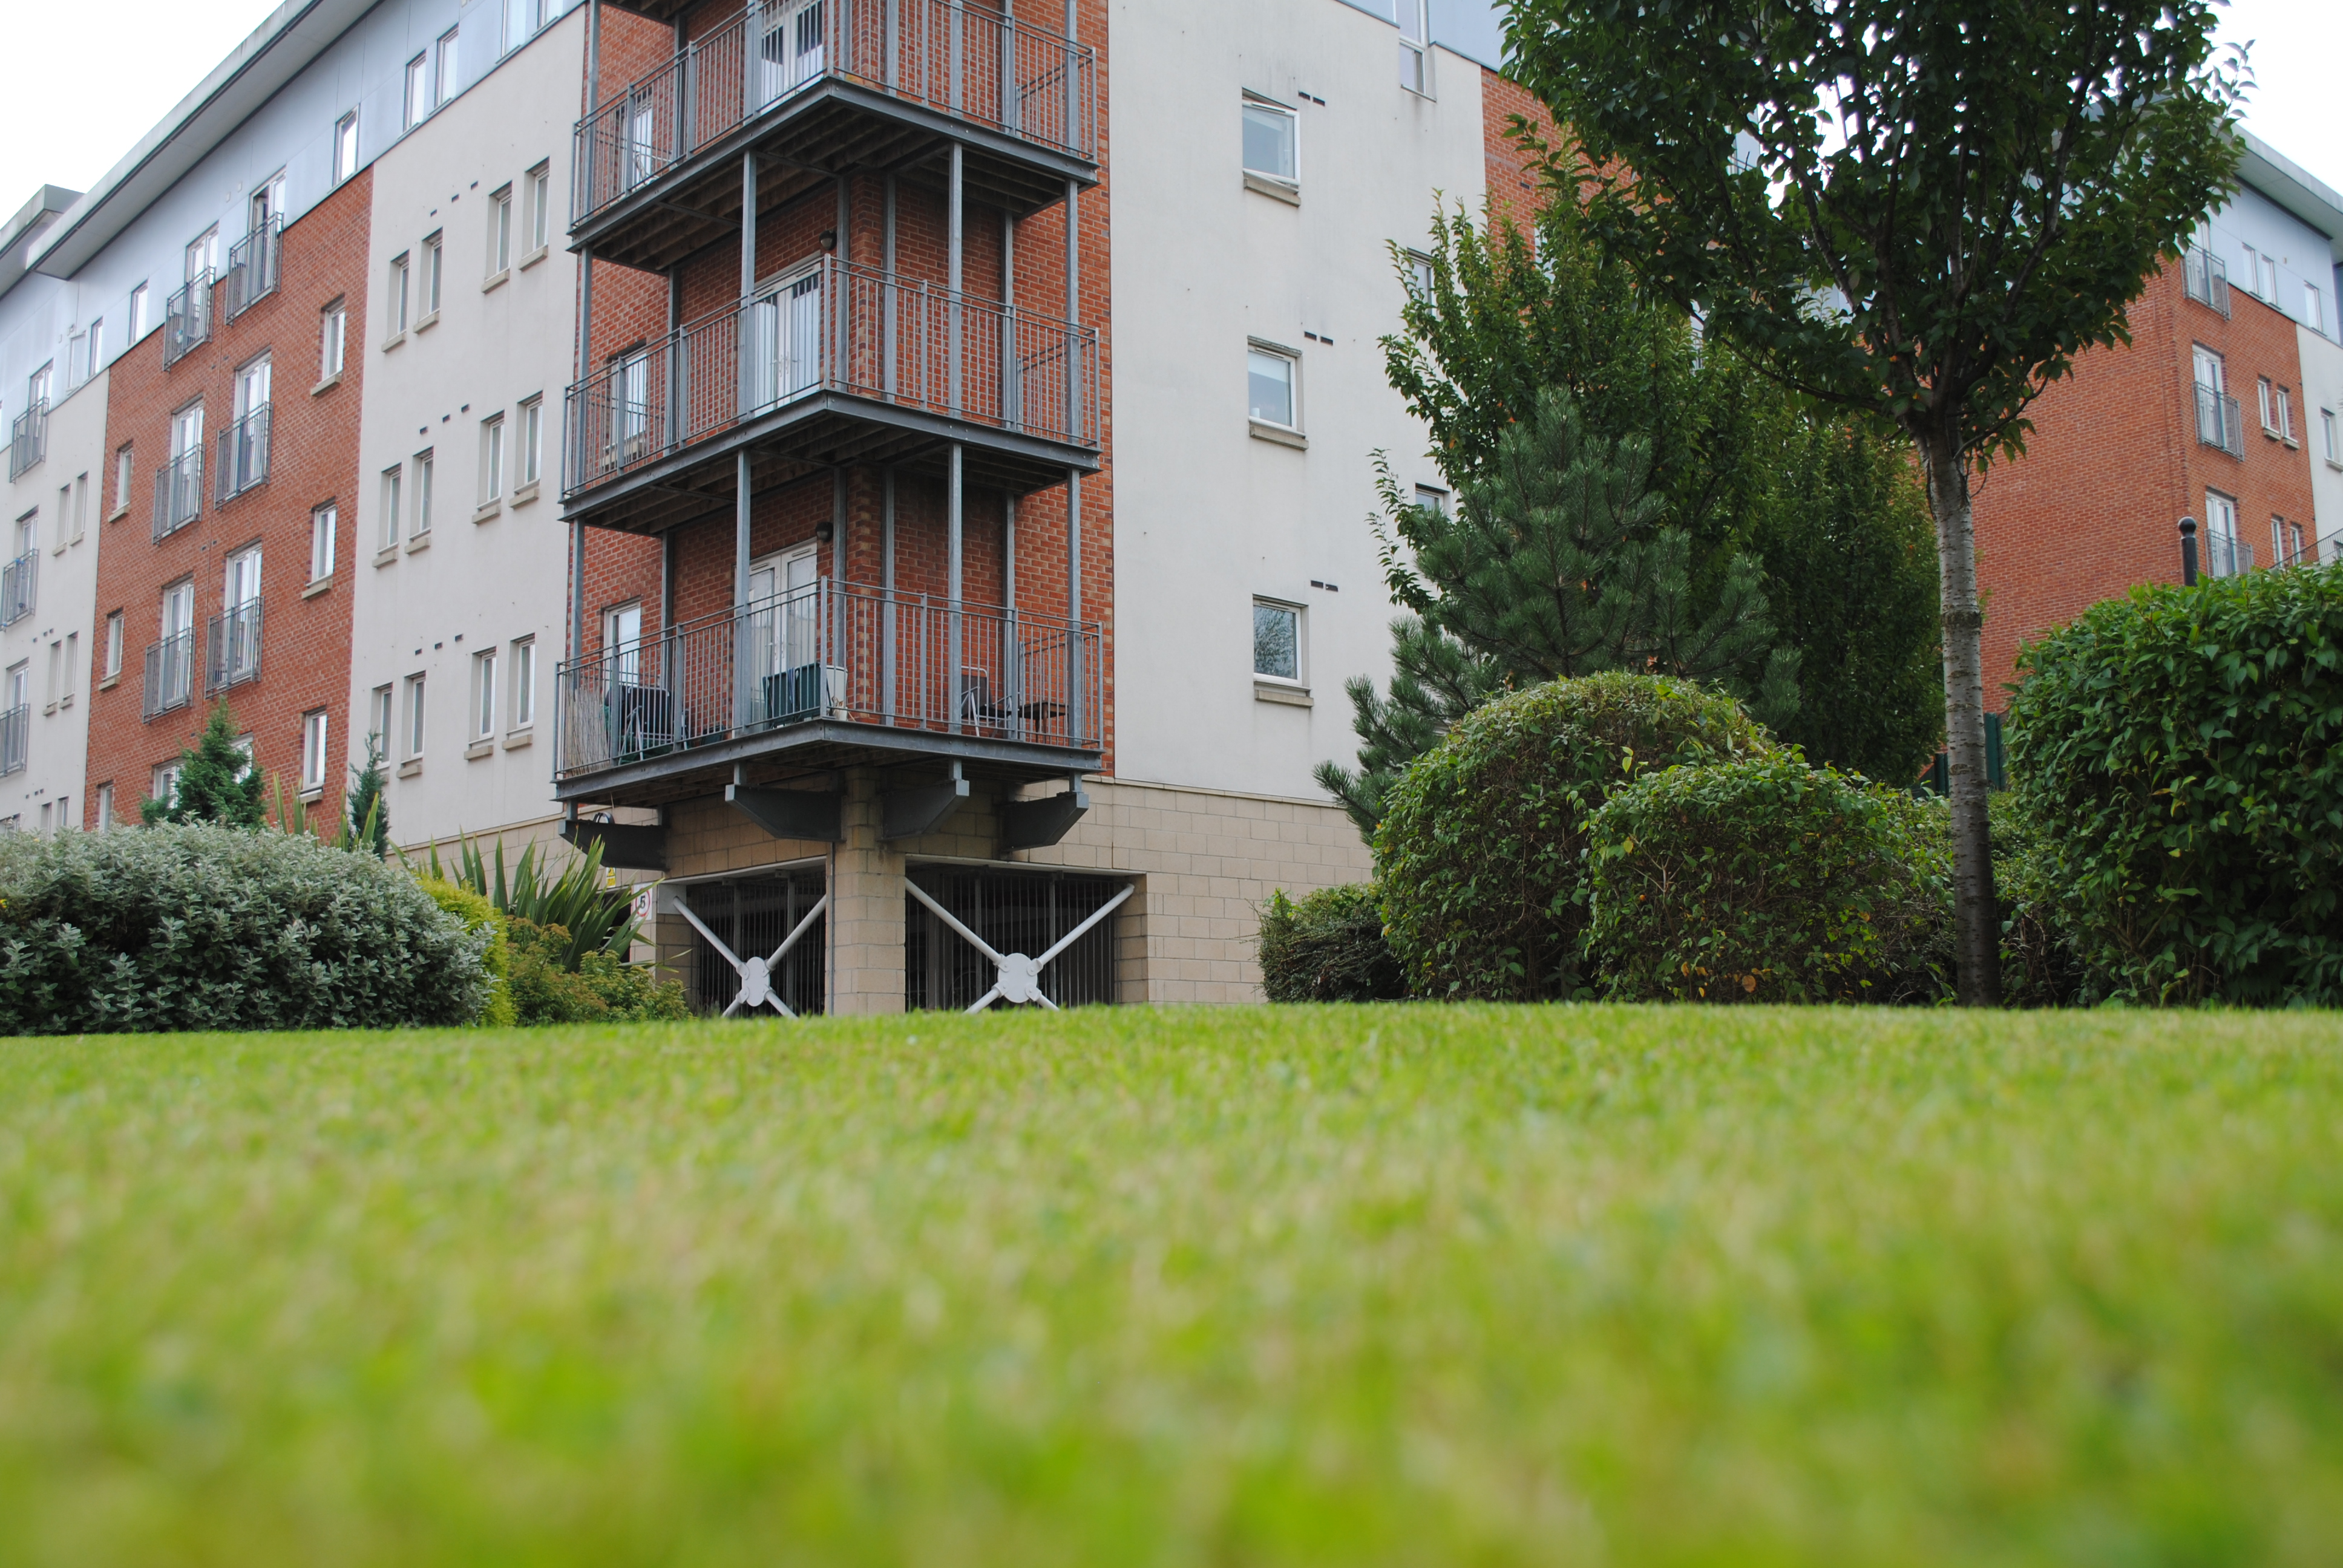 Trinity | Residential Block Management Services In England